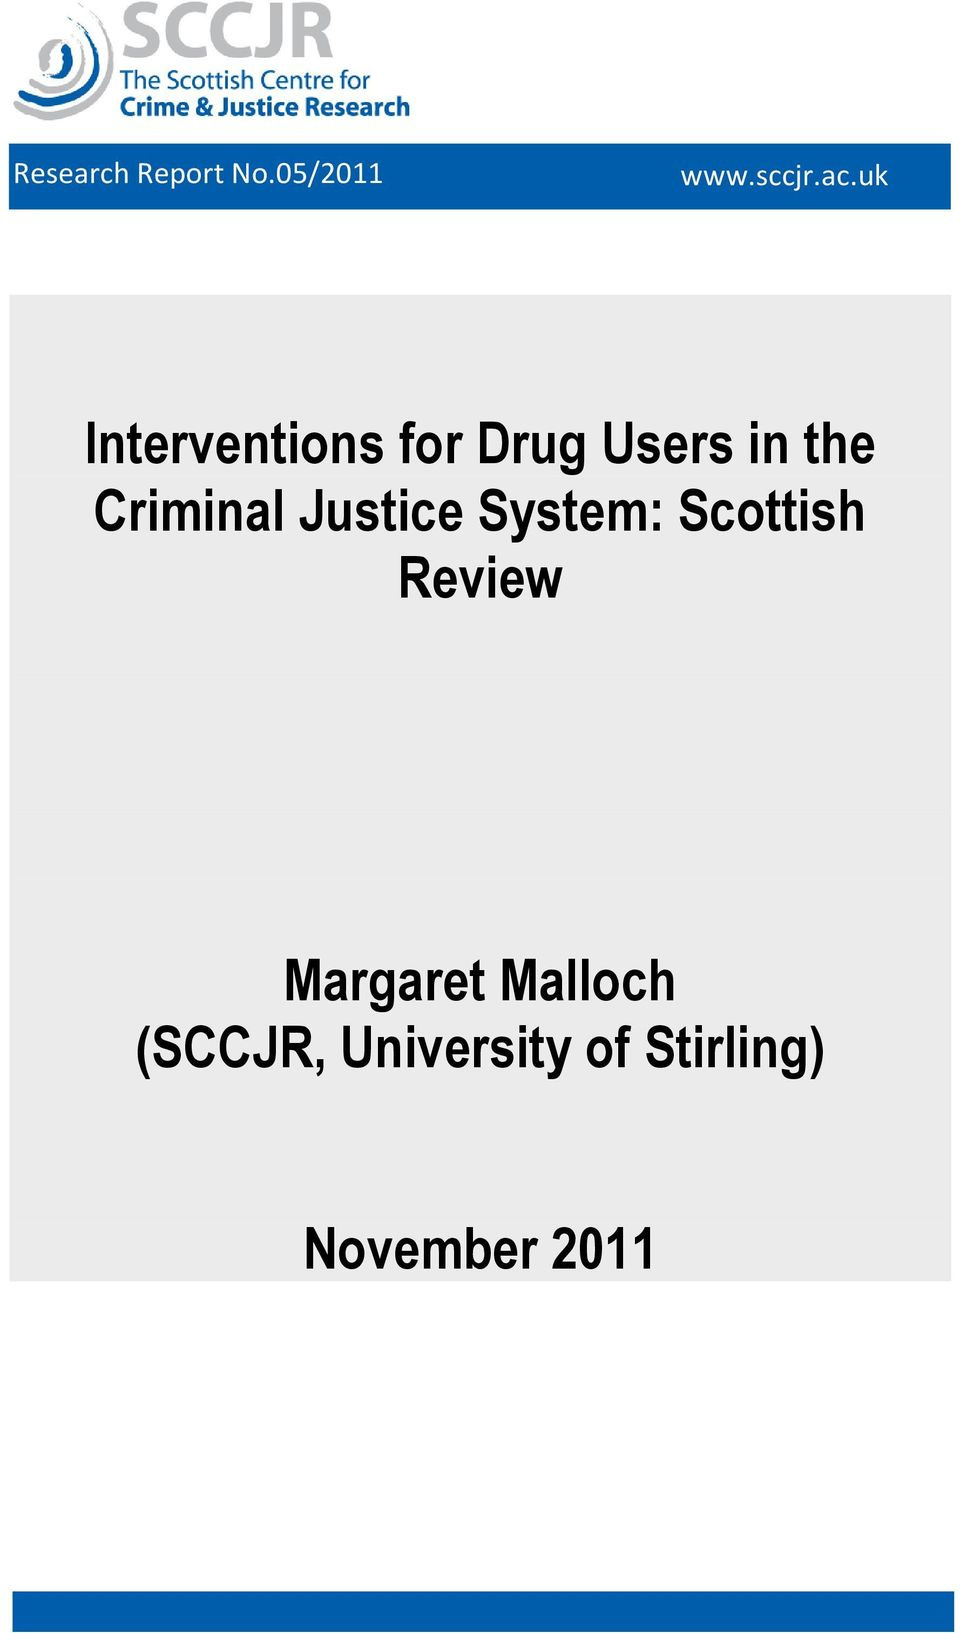 Criminal Justice System: Scottish Review